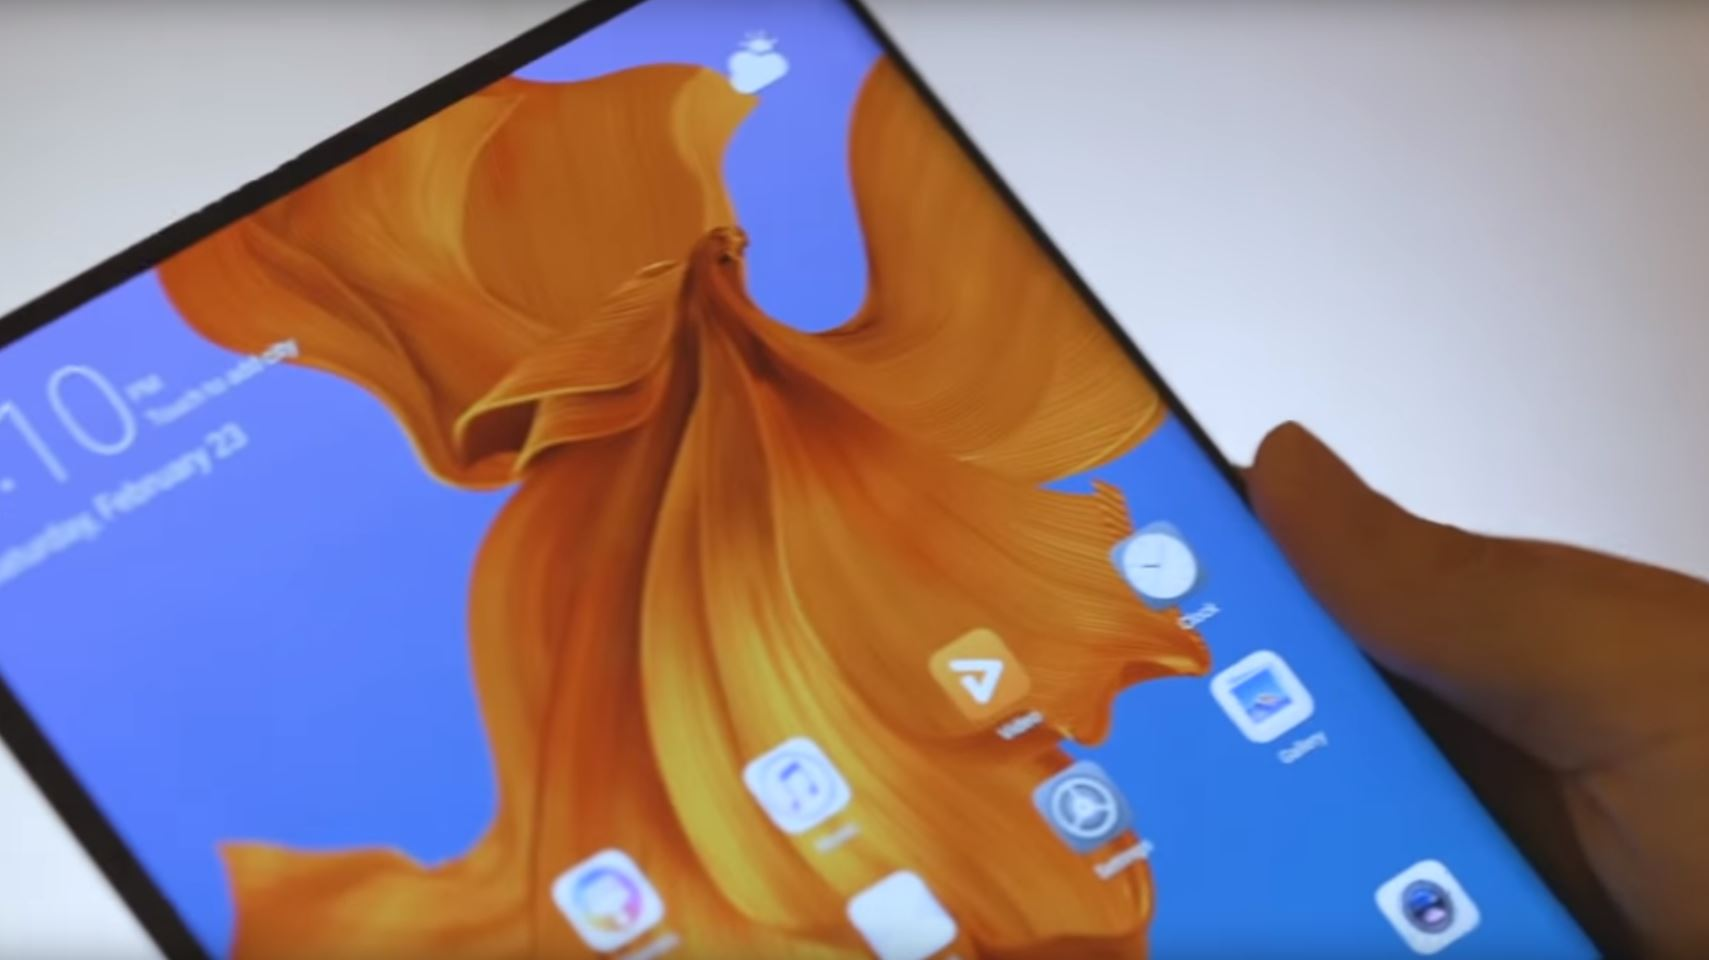 Huawei's Mate X foldable phone is a thinner 5G rival to the Galaxy